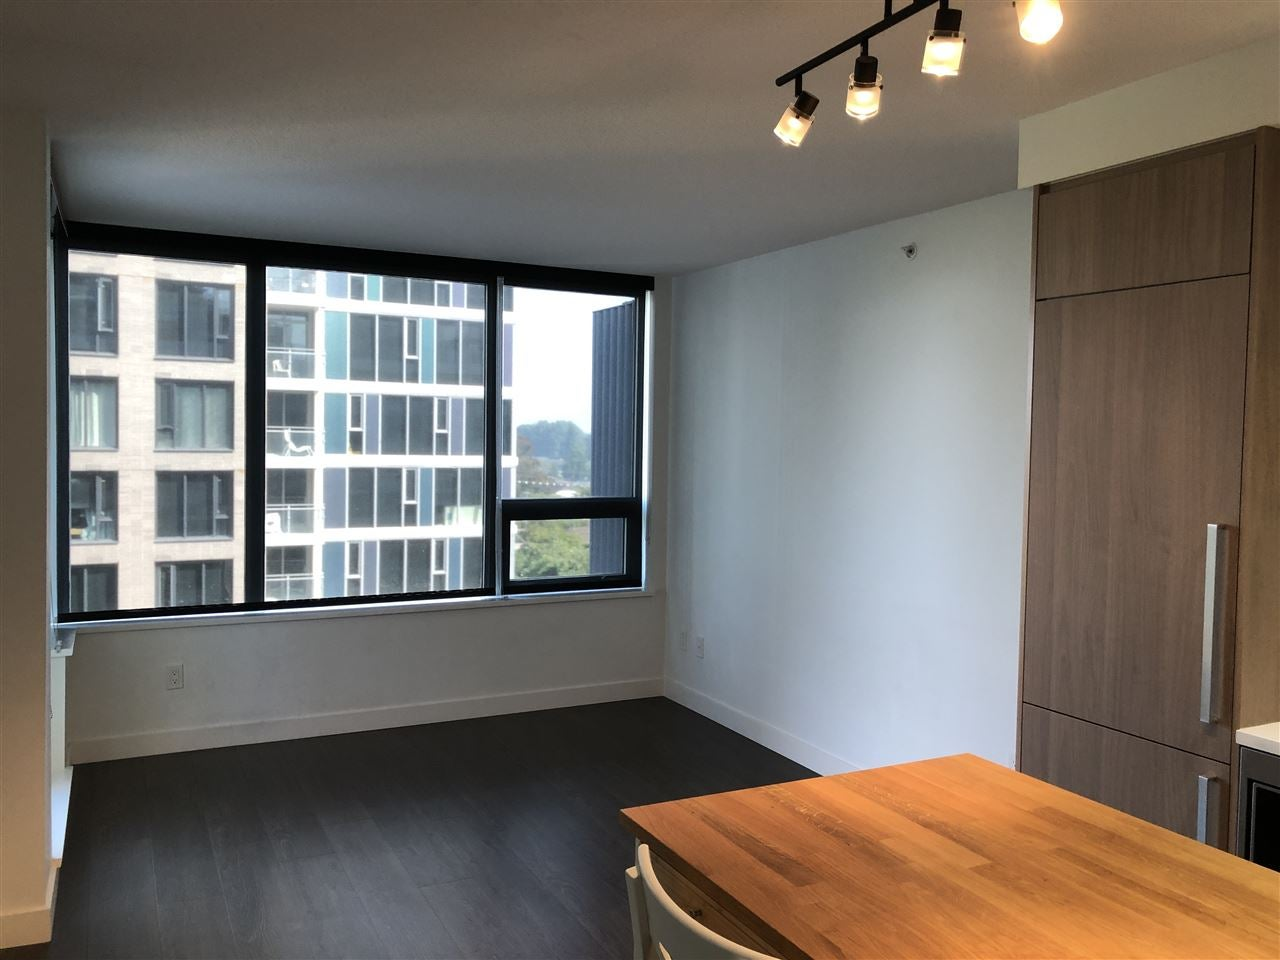 805 3233 KETCHESON ROAD - West Cambie Apartment/Condo for sale, 1 Bedroom (R2495647) - #6